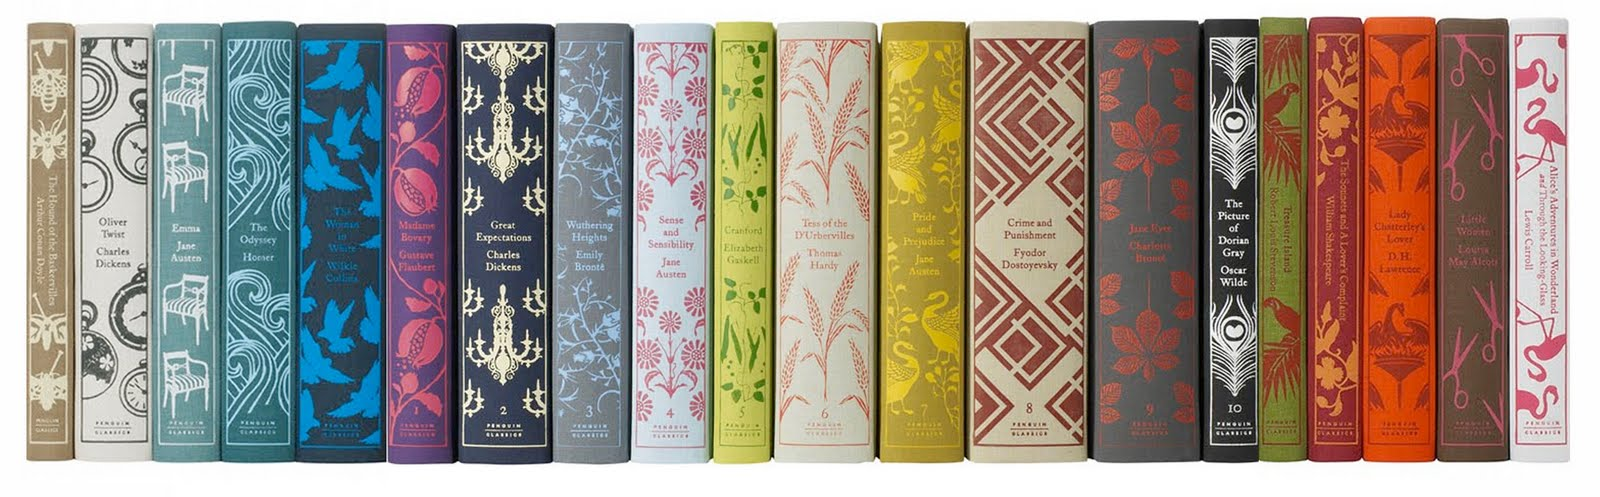 penguin-books